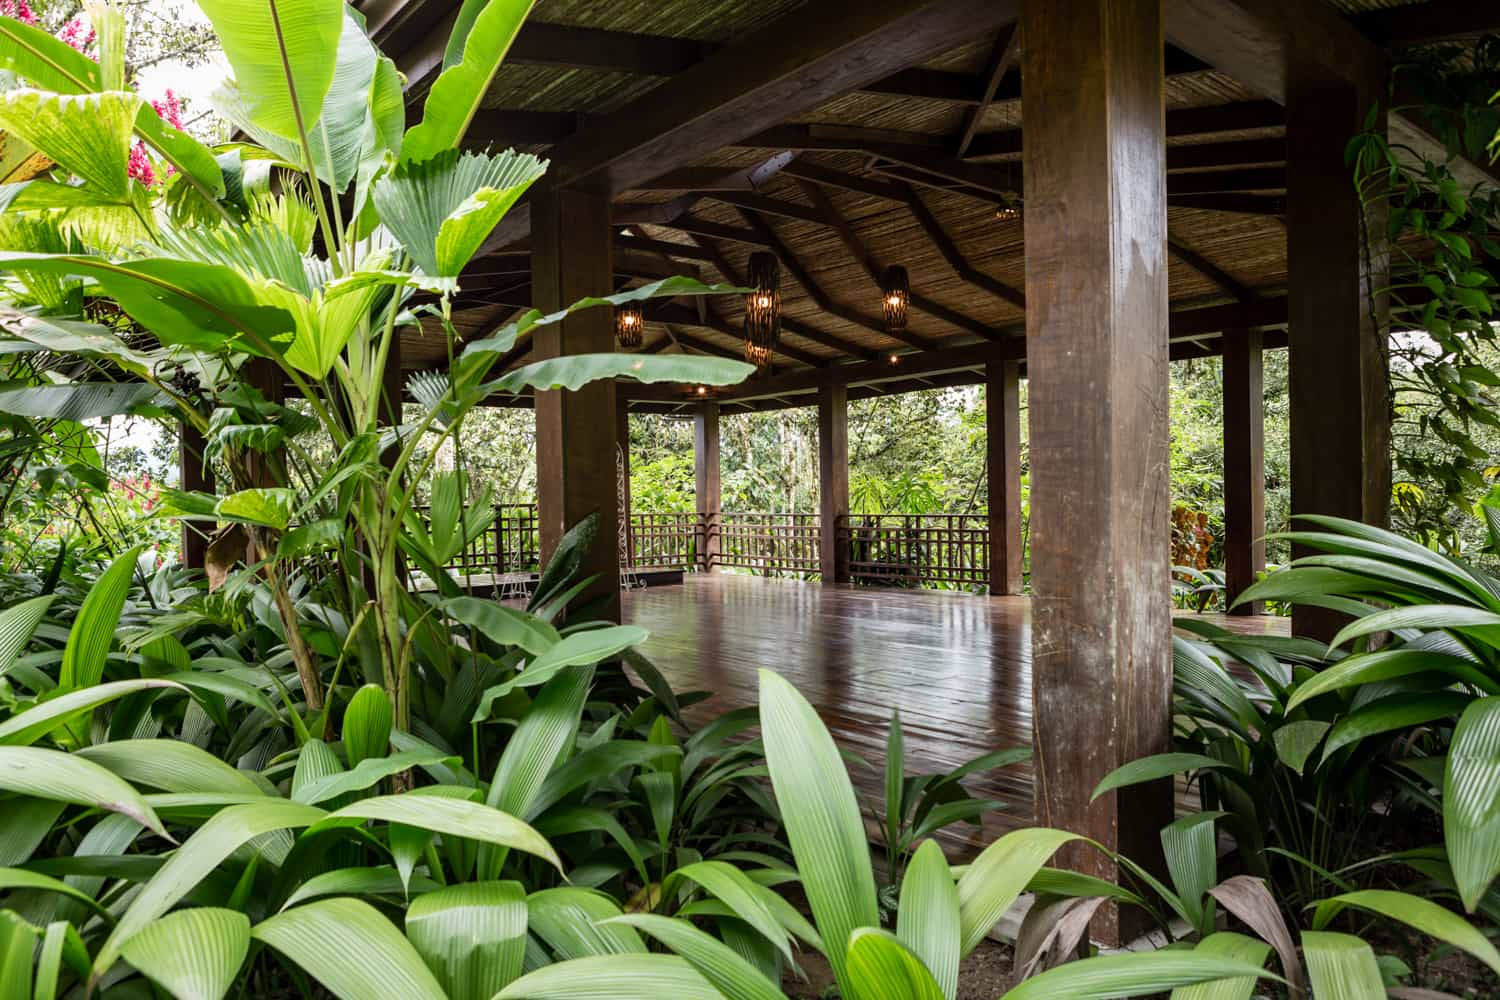 Outside view of pavilion for wedding ceremonies at Lost Iguana in La Fortuna.